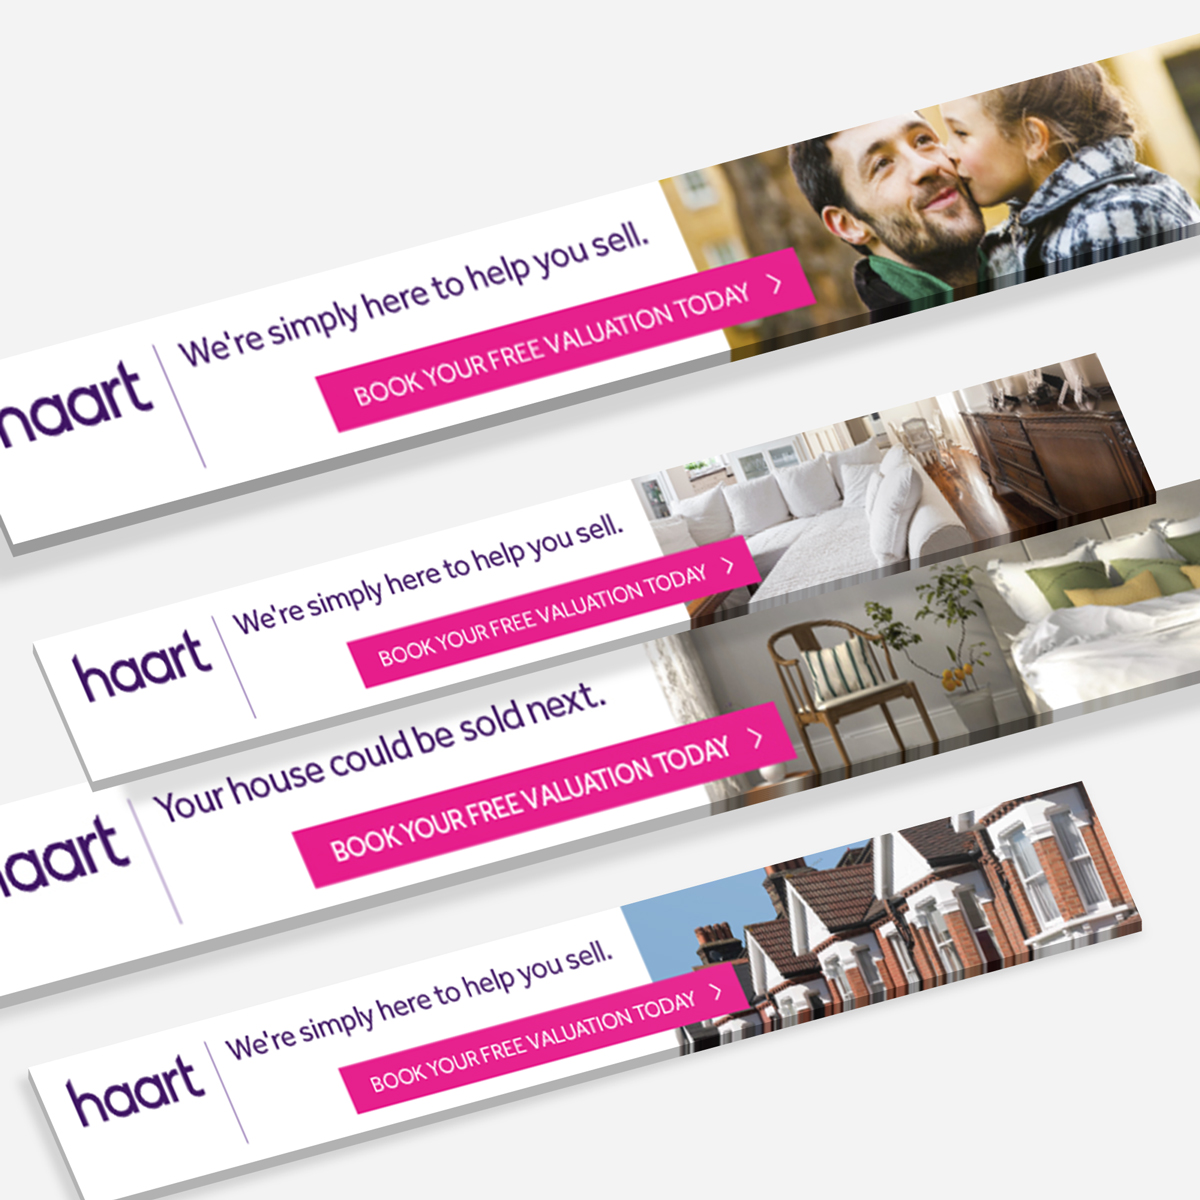 Display ads: Haart